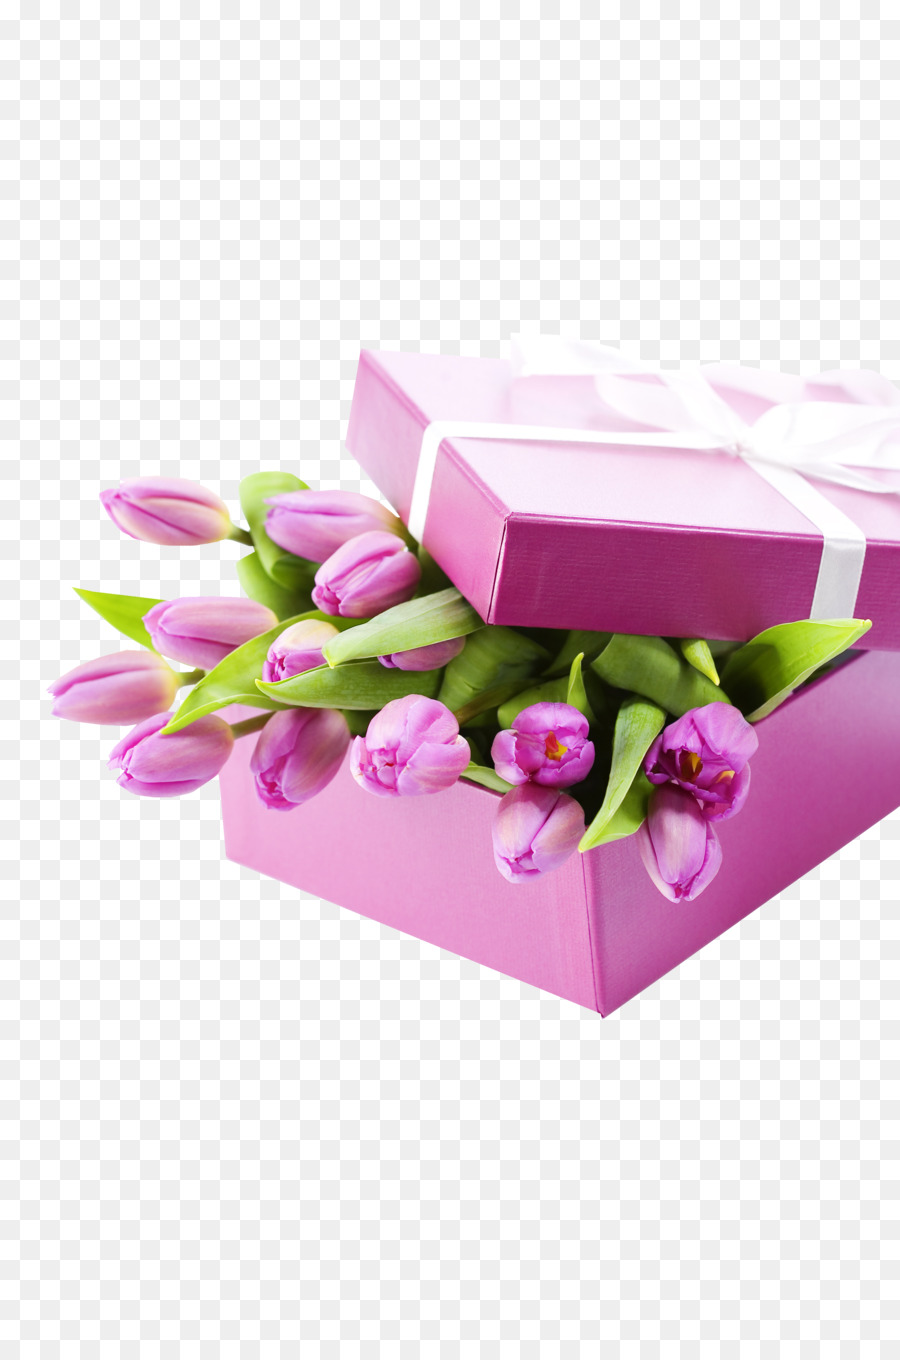 Tulip Gift Flower bouquet Box - Tulips and gift wrapping png ...